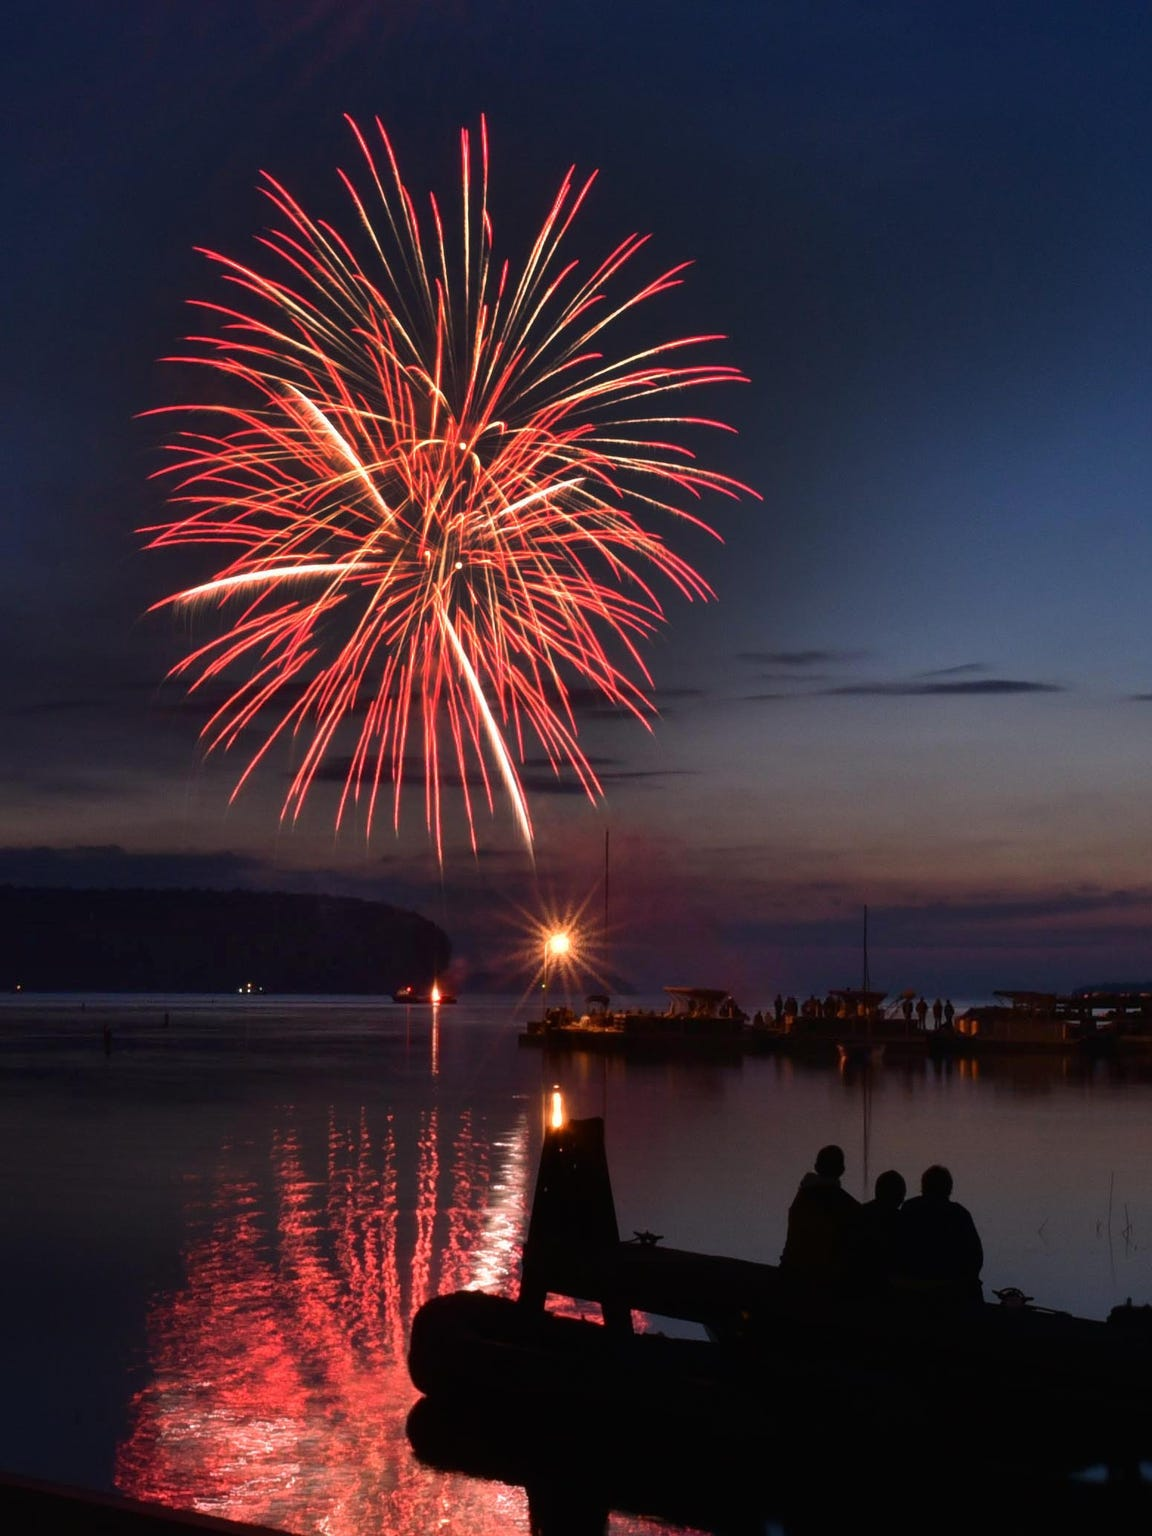 Fireworks will be blasting all over the Fox Valley